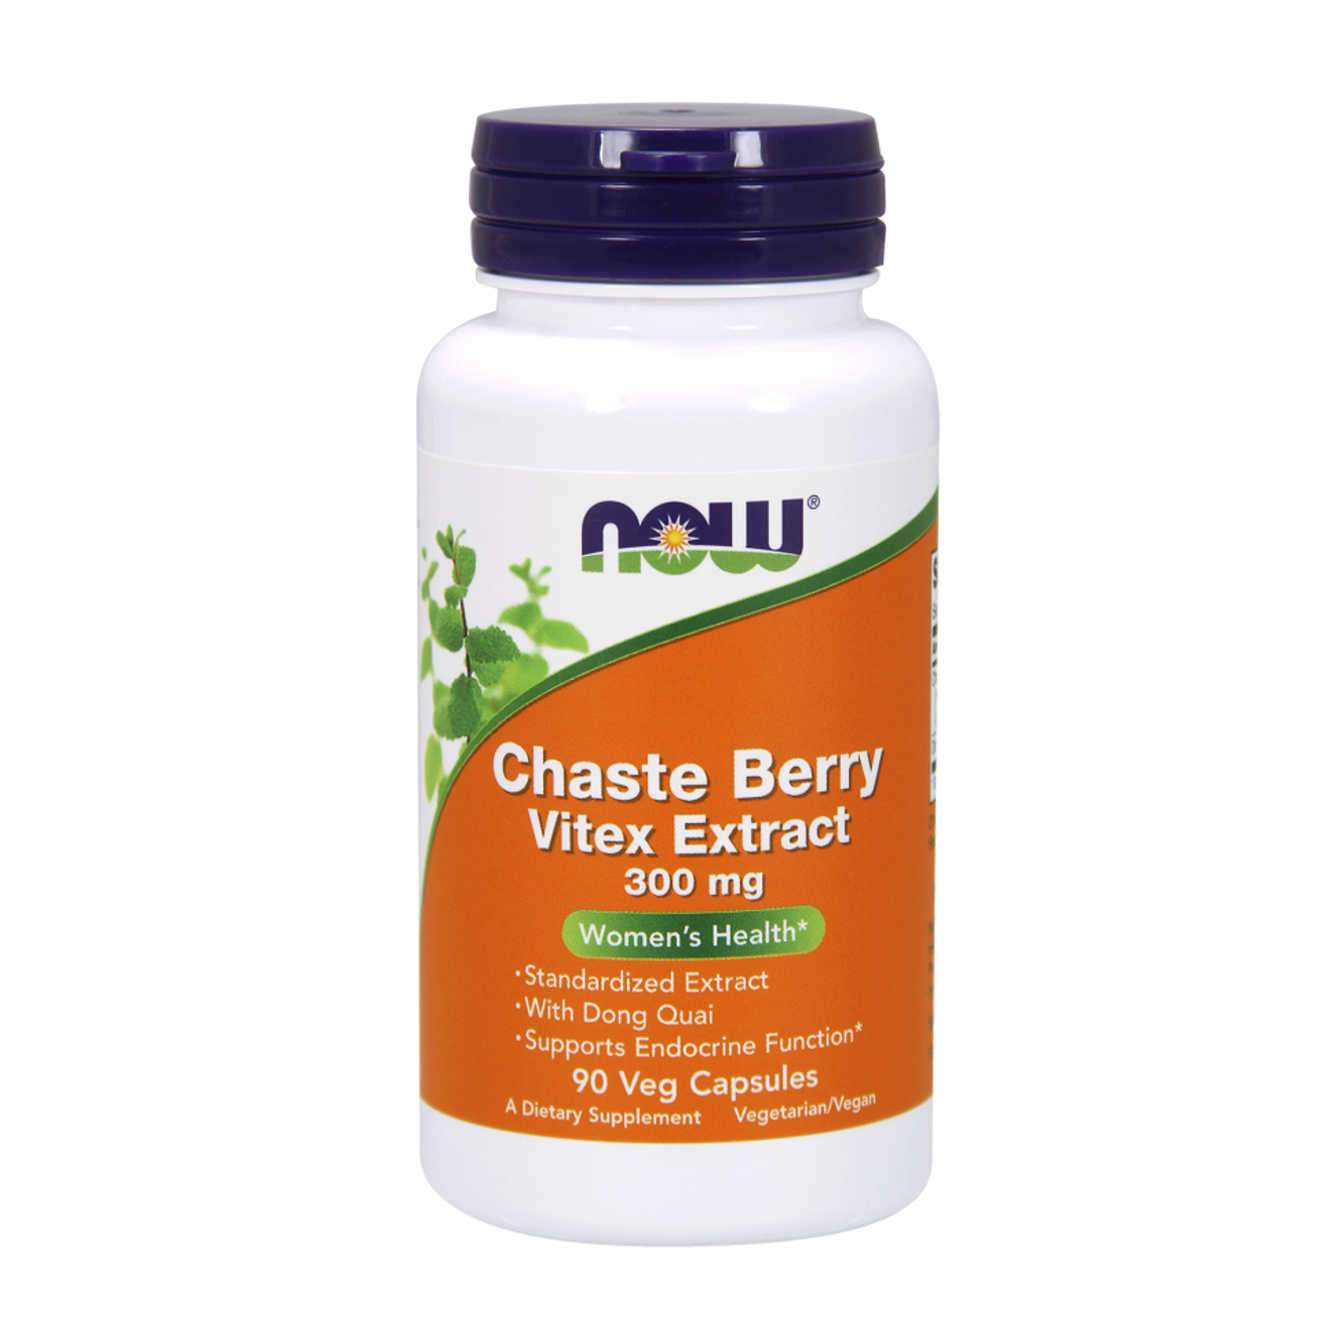 CHASTEBERRY VITEX EXTRACT 300mg - 90 veg caps